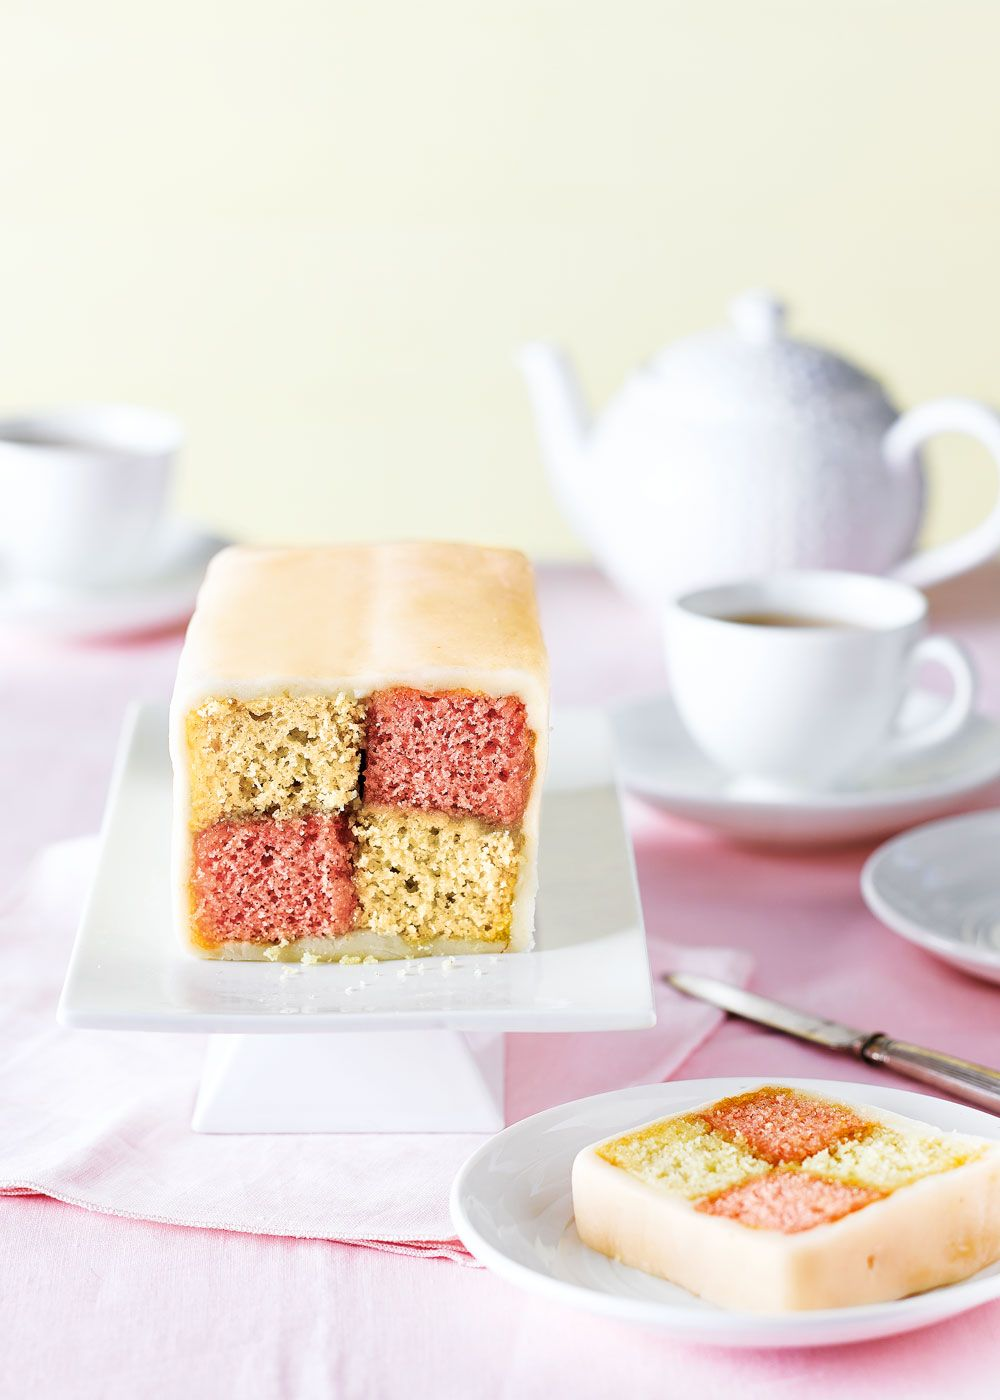 Battenberg cake | Recipe | Pinterest | Real foods, Cake and Dinners